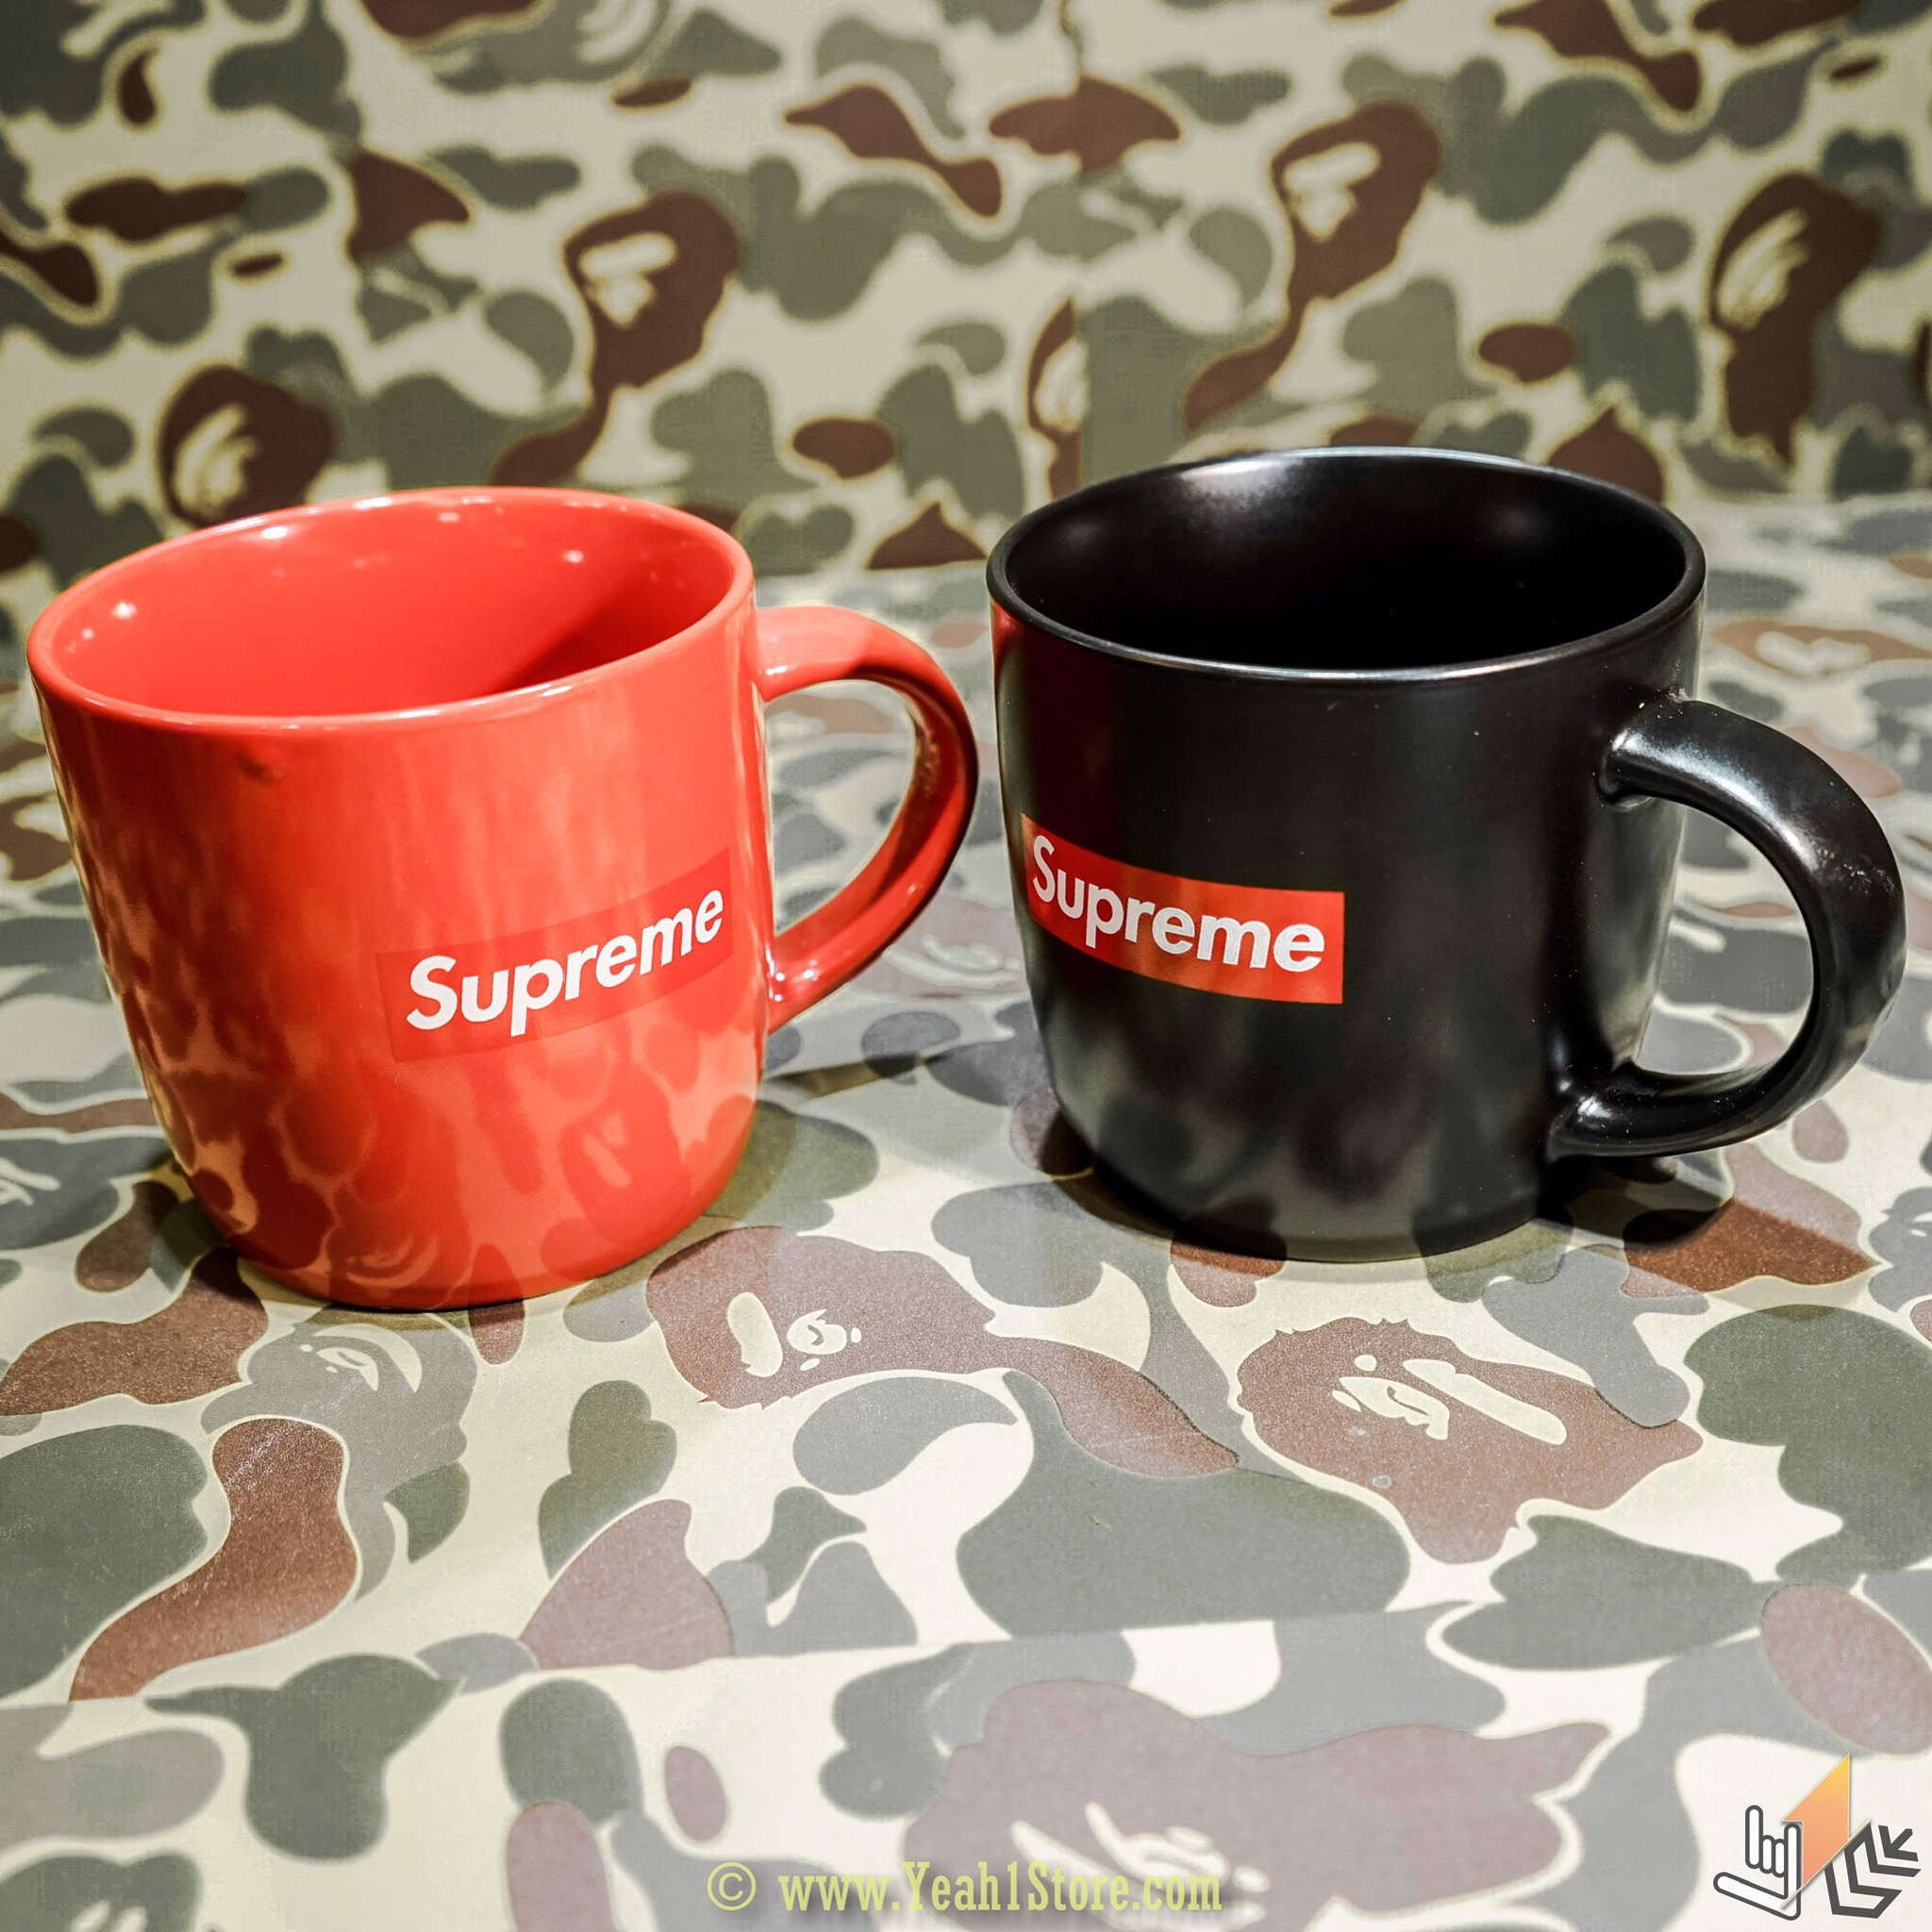 LY SỨ SUPREME